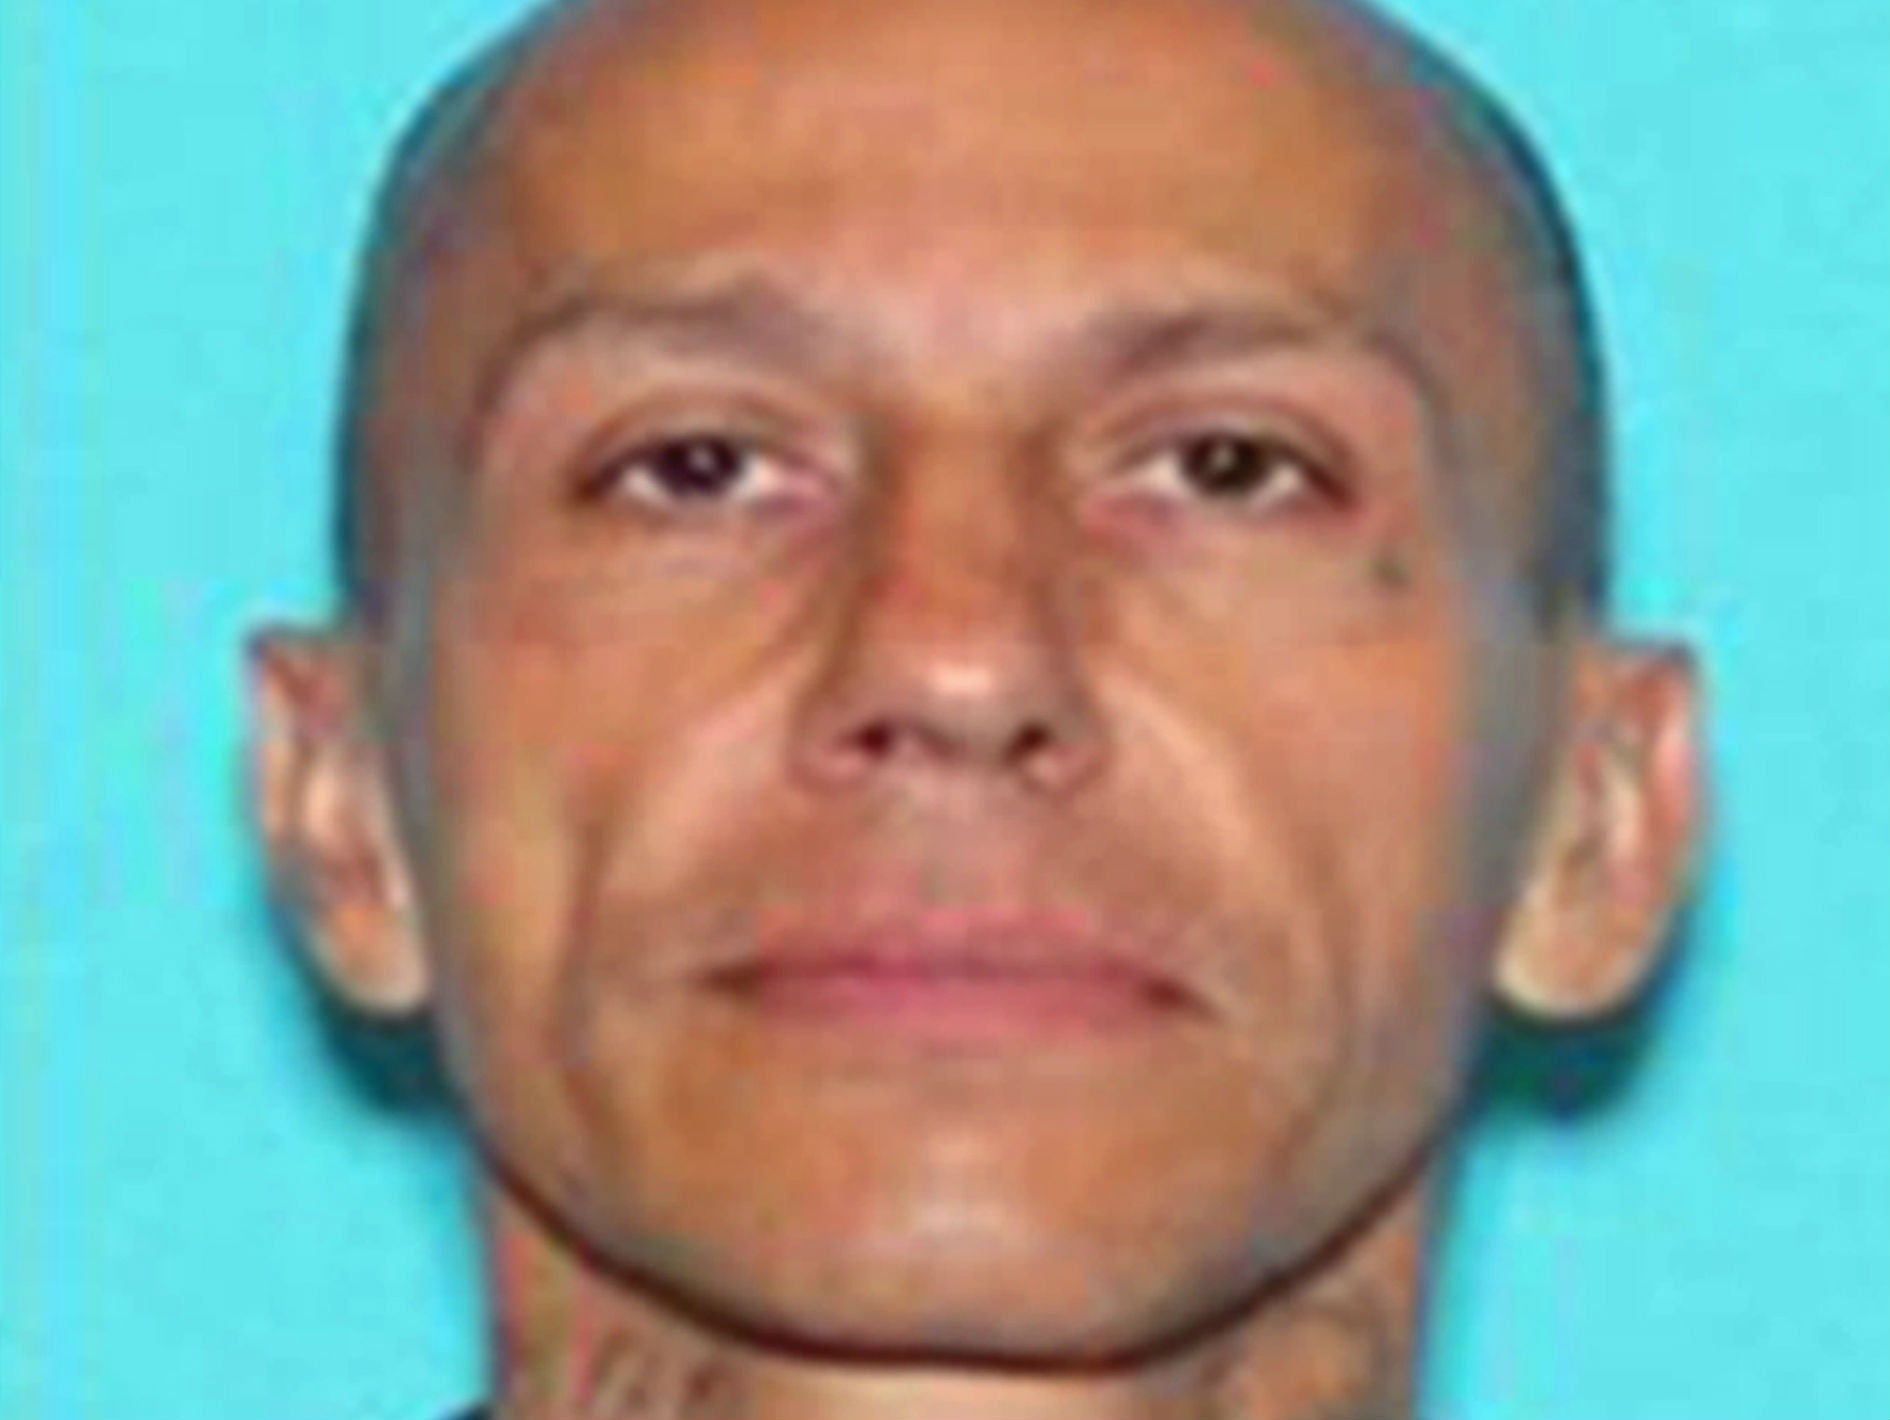 Suspected Houston serial killer Jose Gilberto Rodriguez arrested after 'cutting off ankle tag'